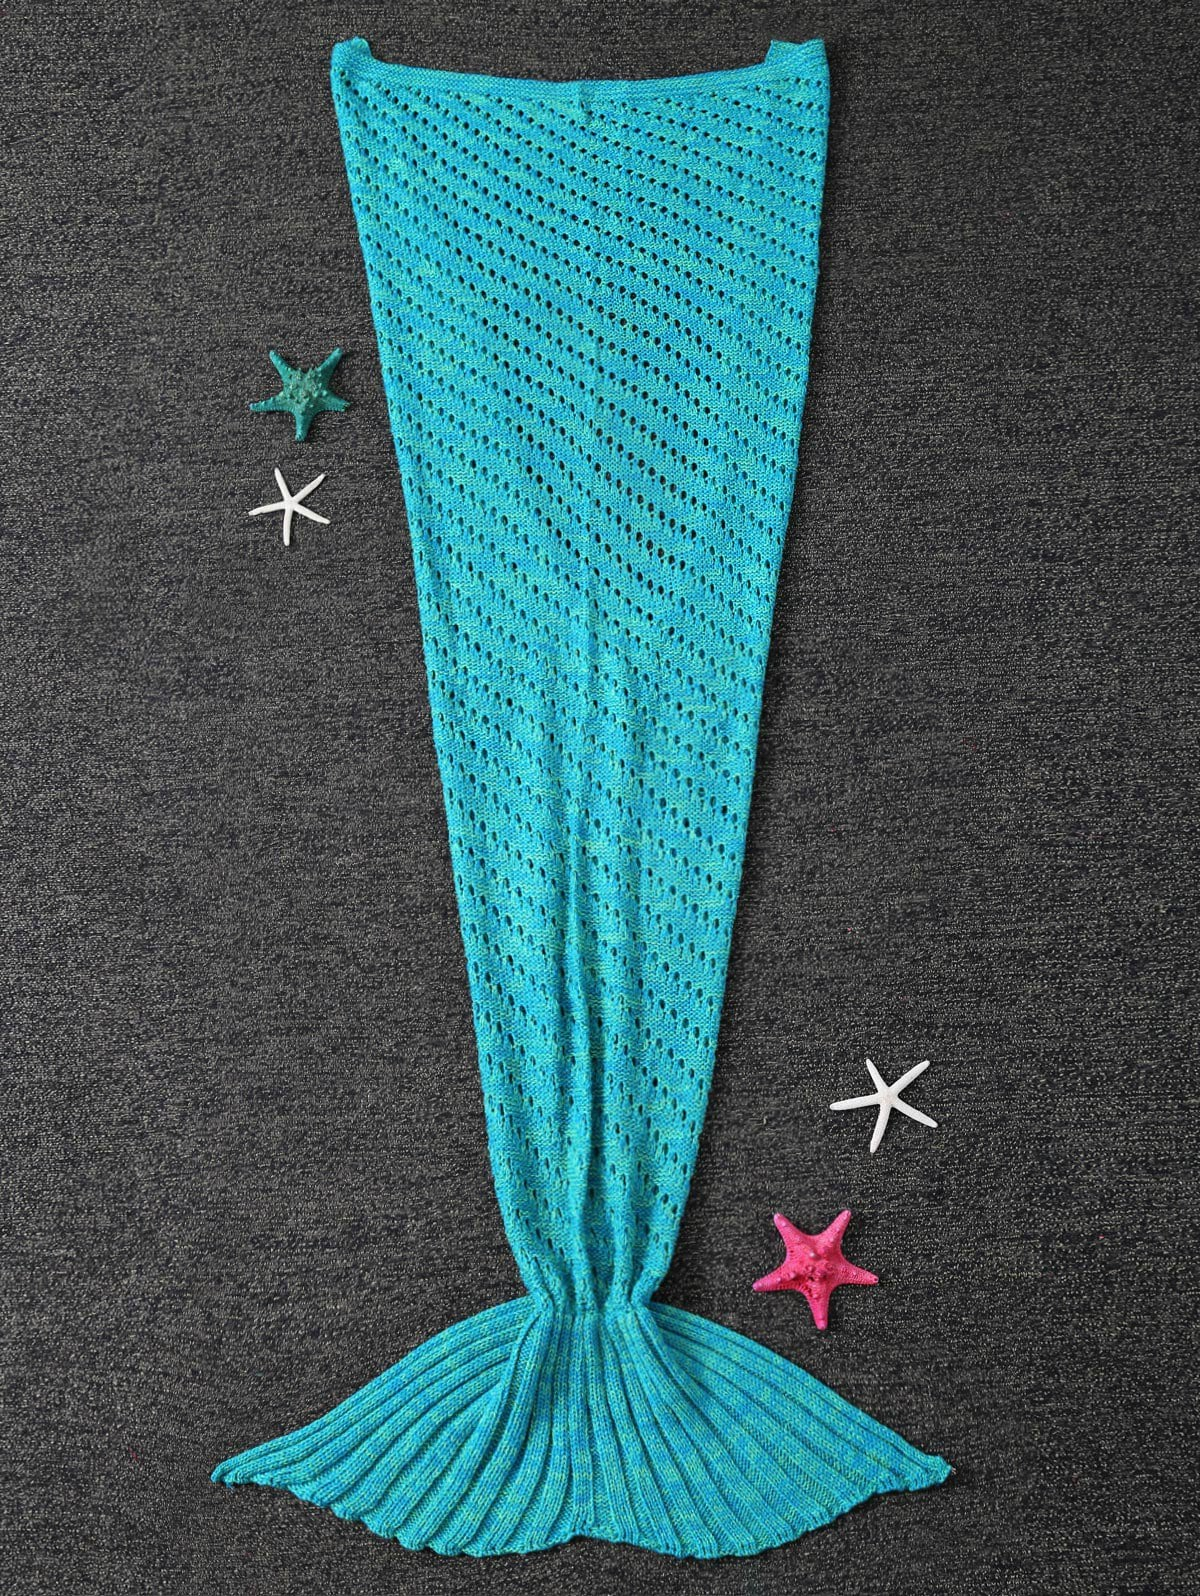 Amazing Crochet Mermaid Pattern for Baby's Mermaid Tail Girls Crochet Mermaid Tail Blanket Knitting Pattern Blue Knit For